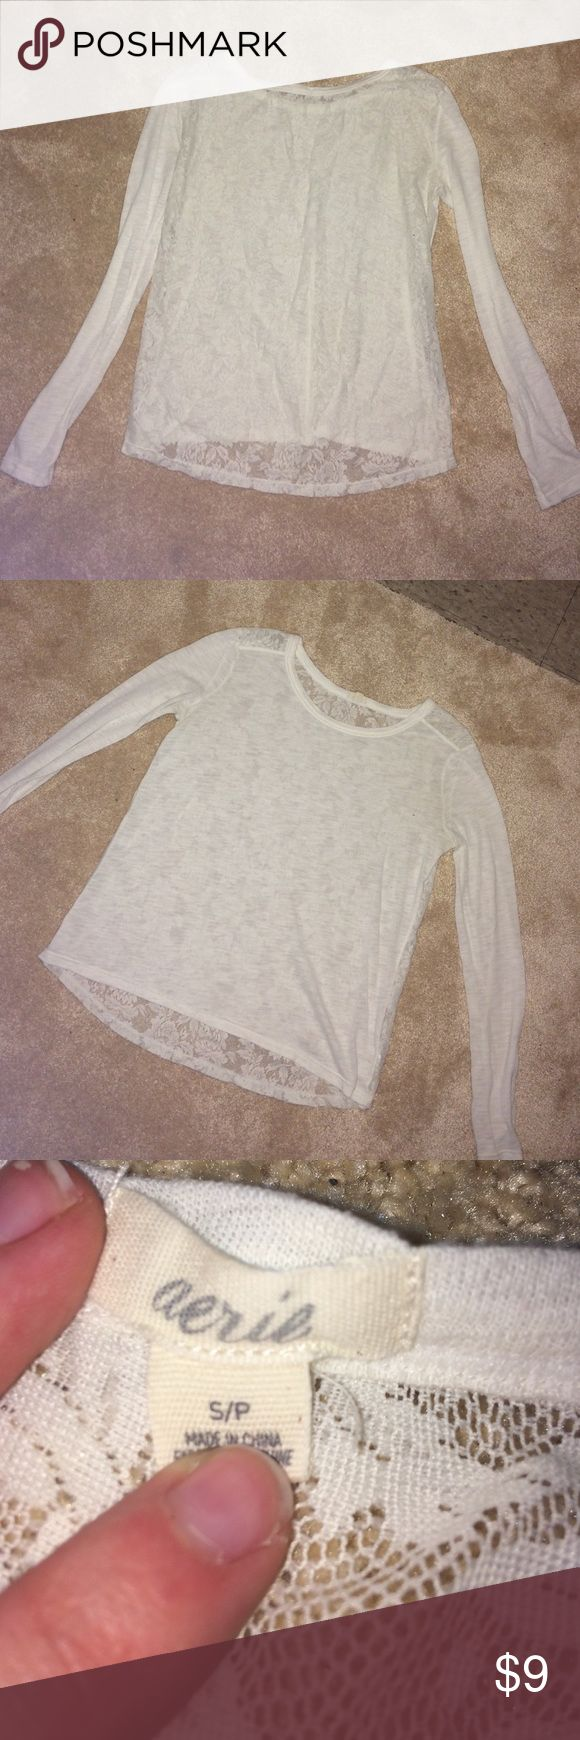 PRETTY LACE BACK AERIE CREAM LONG SLEEVE TOP SMALL Gently used condition lace back cream colored long sleeve shirt from Aerie size small. Very pretty top! aerie Tops Tees - Long Sleeve